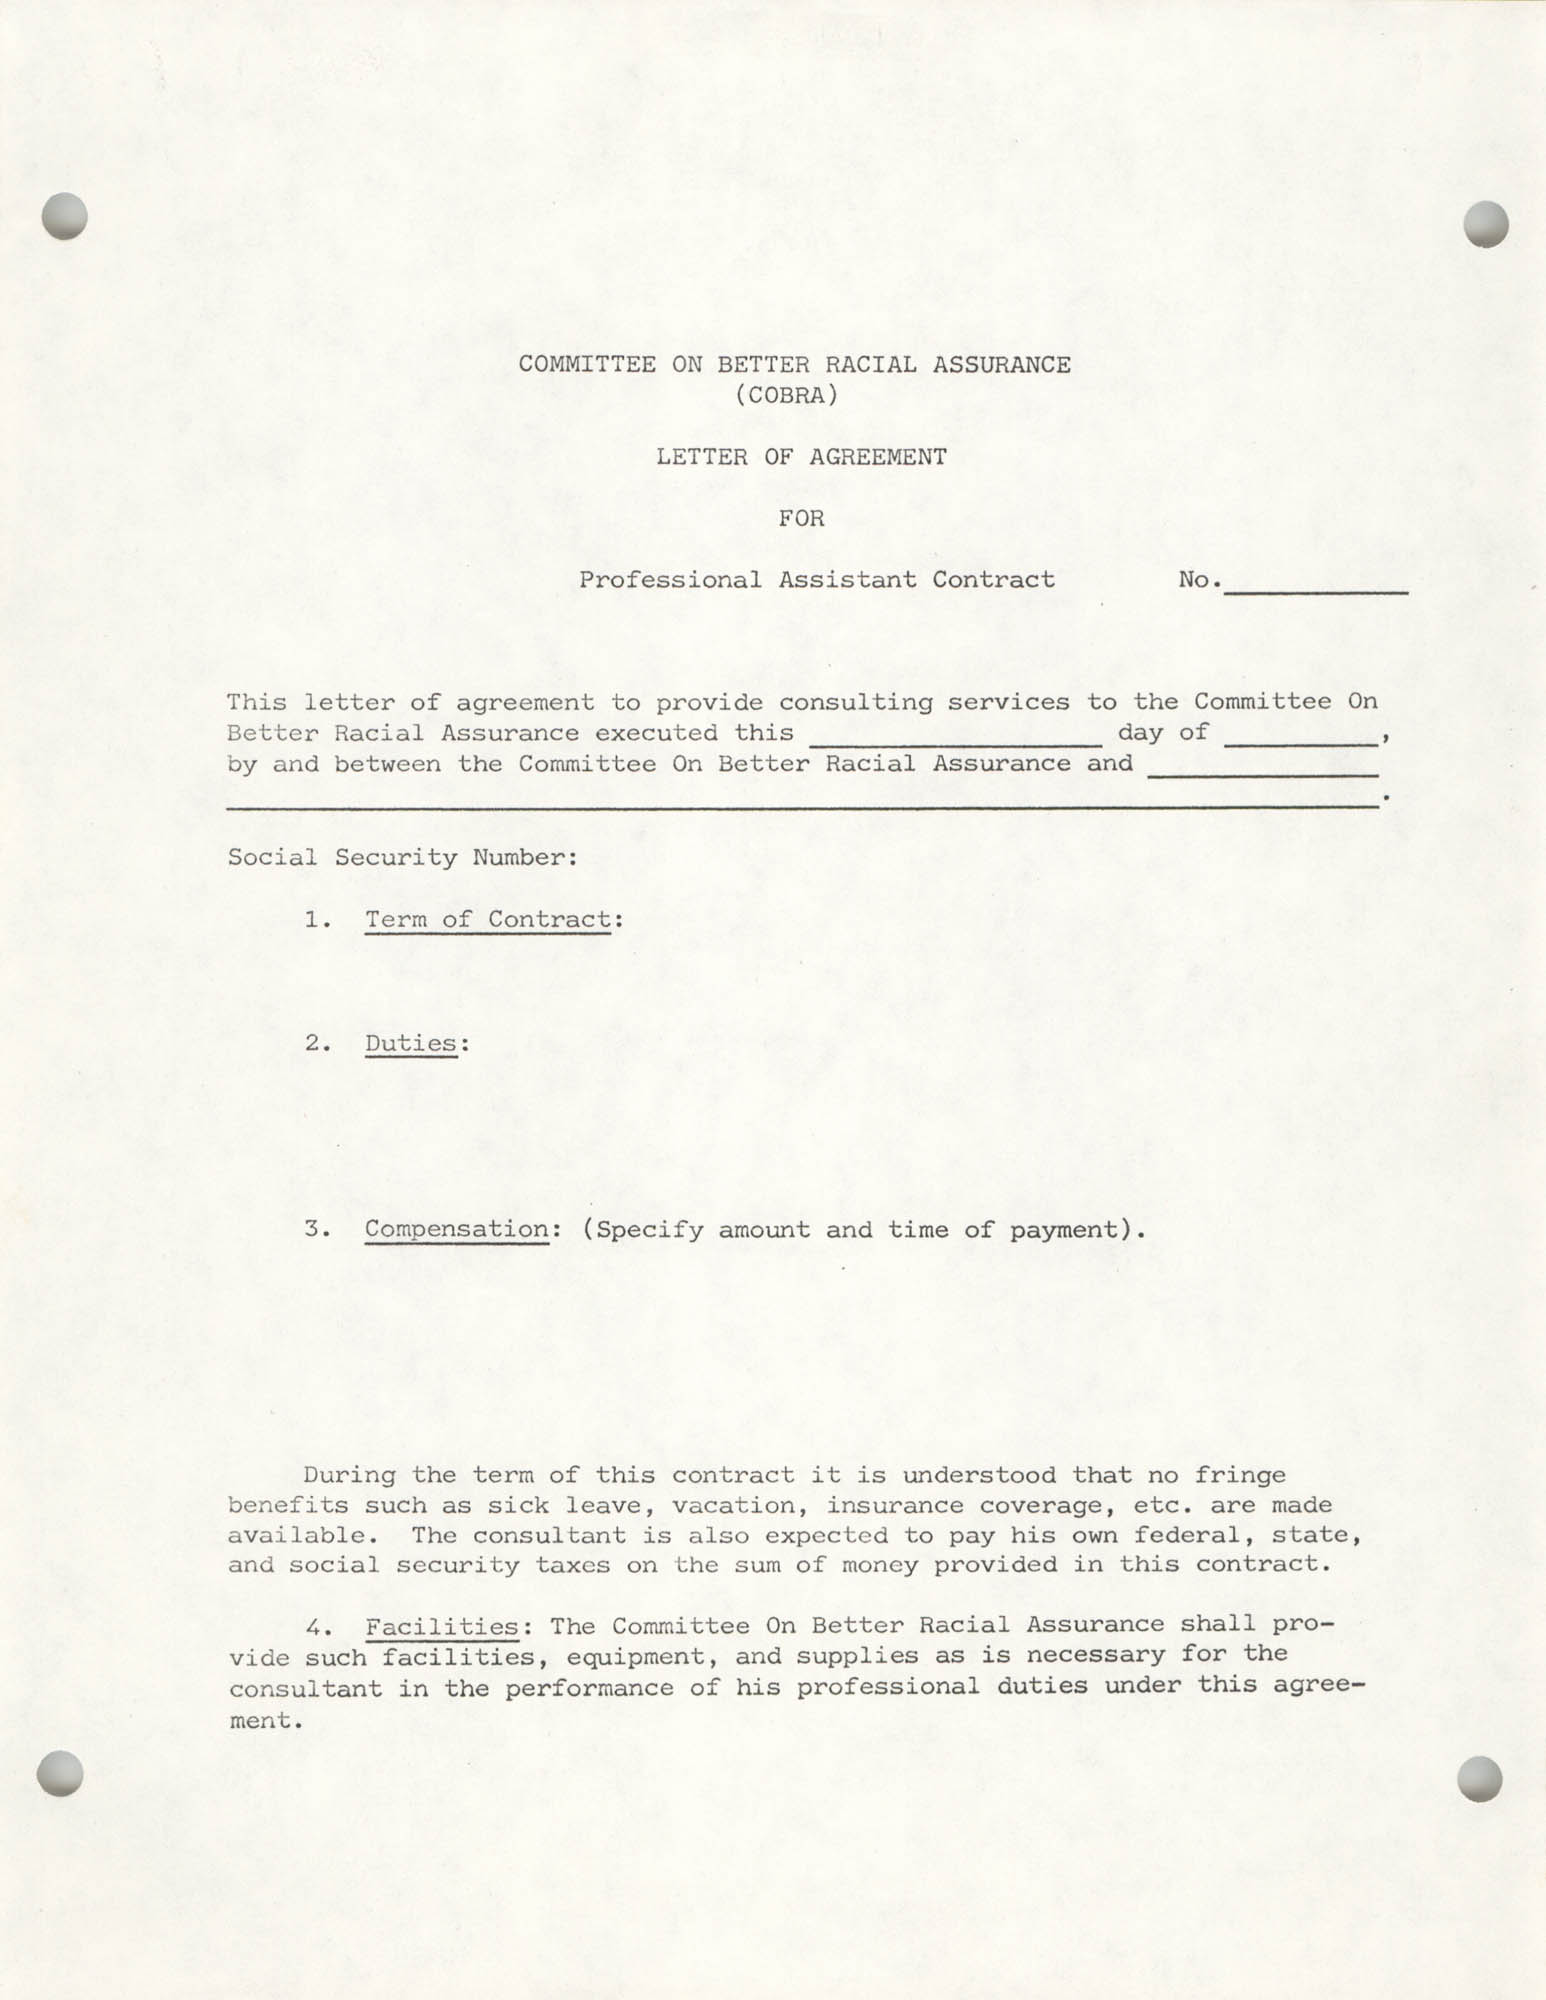 COBRA Letter of Agreement for Professional Assistant Contract, Page 1